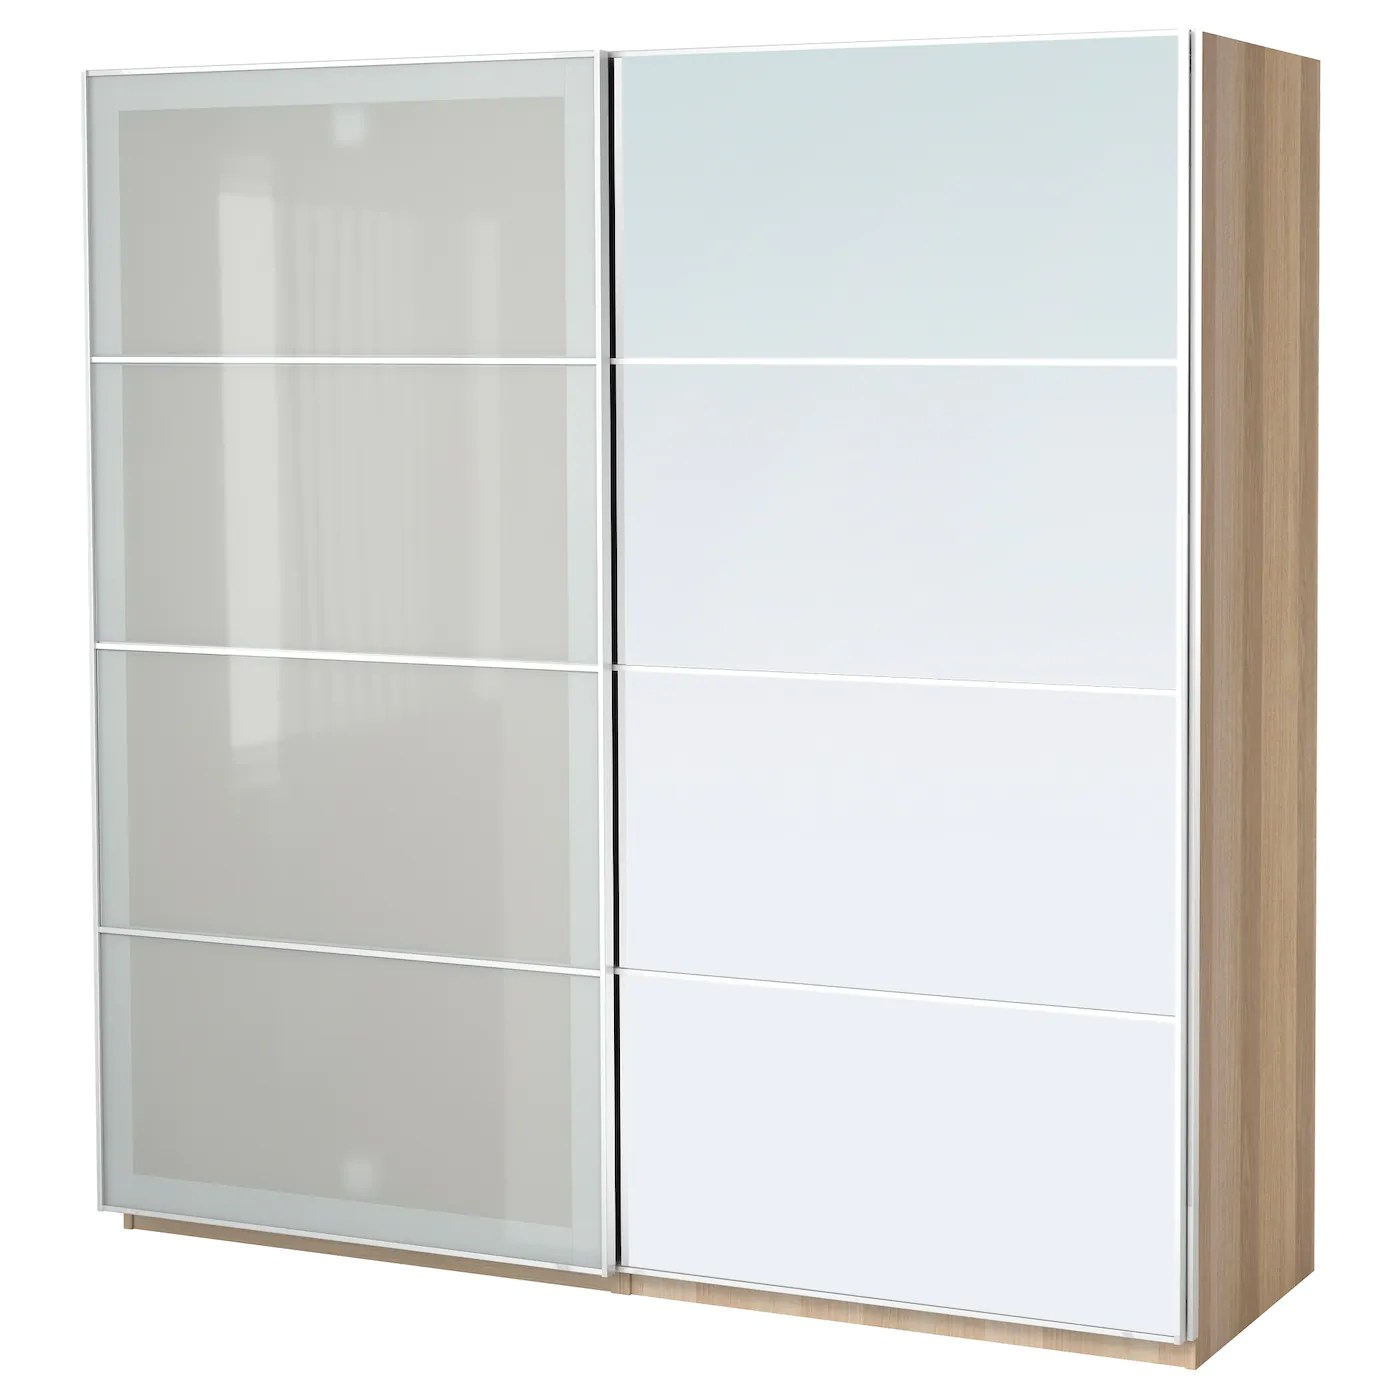 Pax Sekken Pax Wardrobe White Stained Oak Effect Auli Sekken 200 X 66